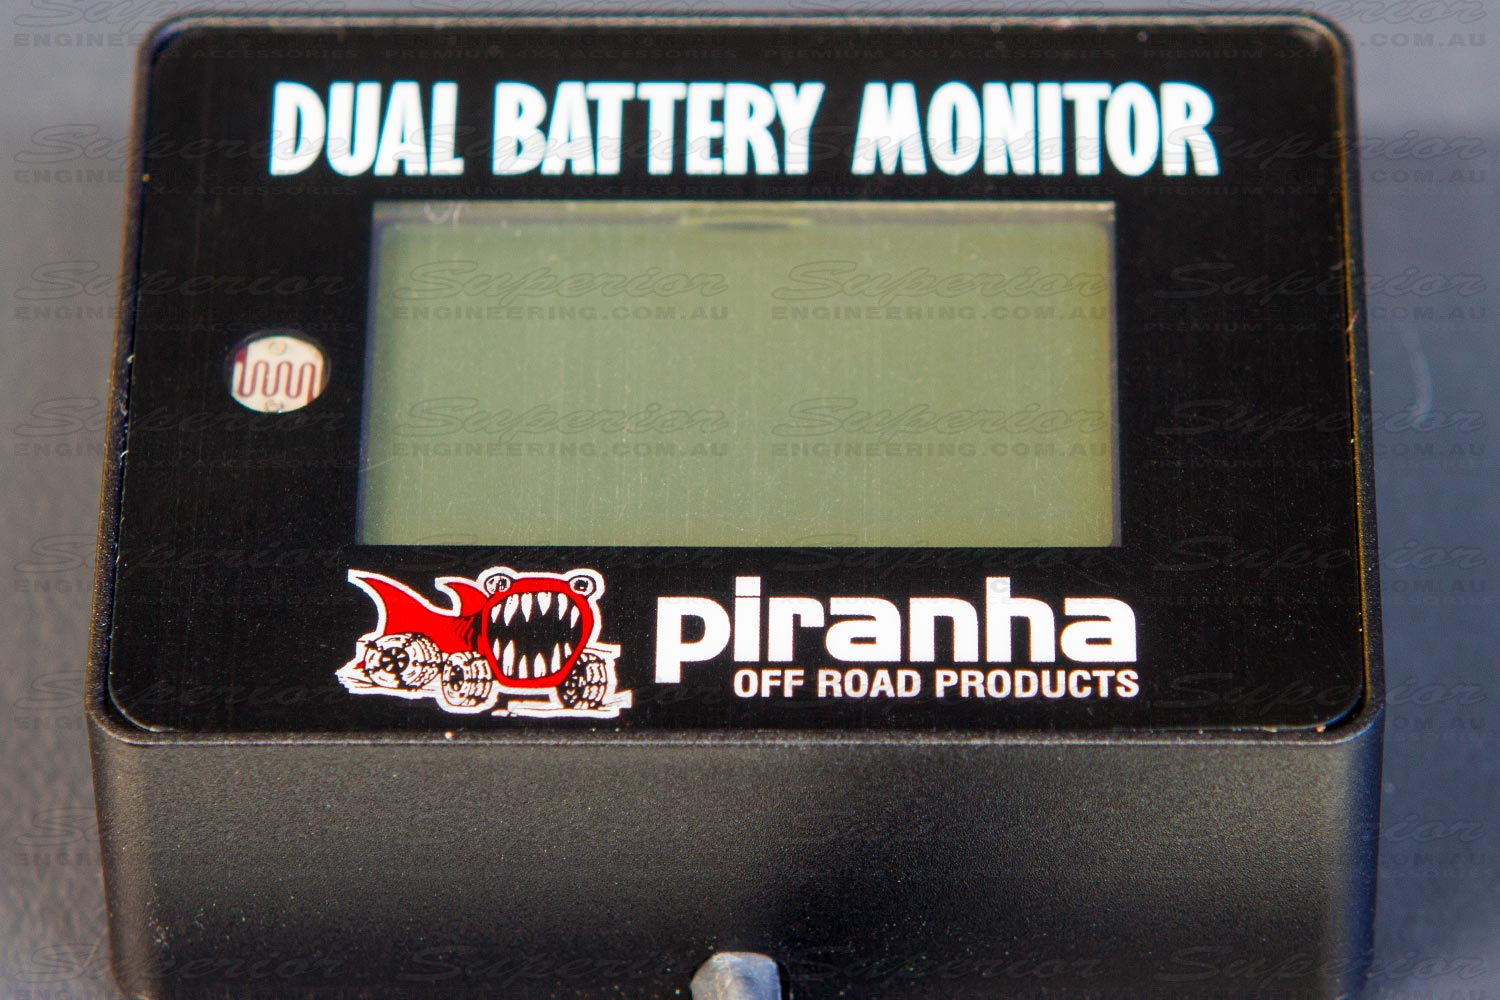 battery monitor DBM5D piranha offroad battery monitors 4x4 accessories online piranha battery monitor wiring diagram at creativeand.co